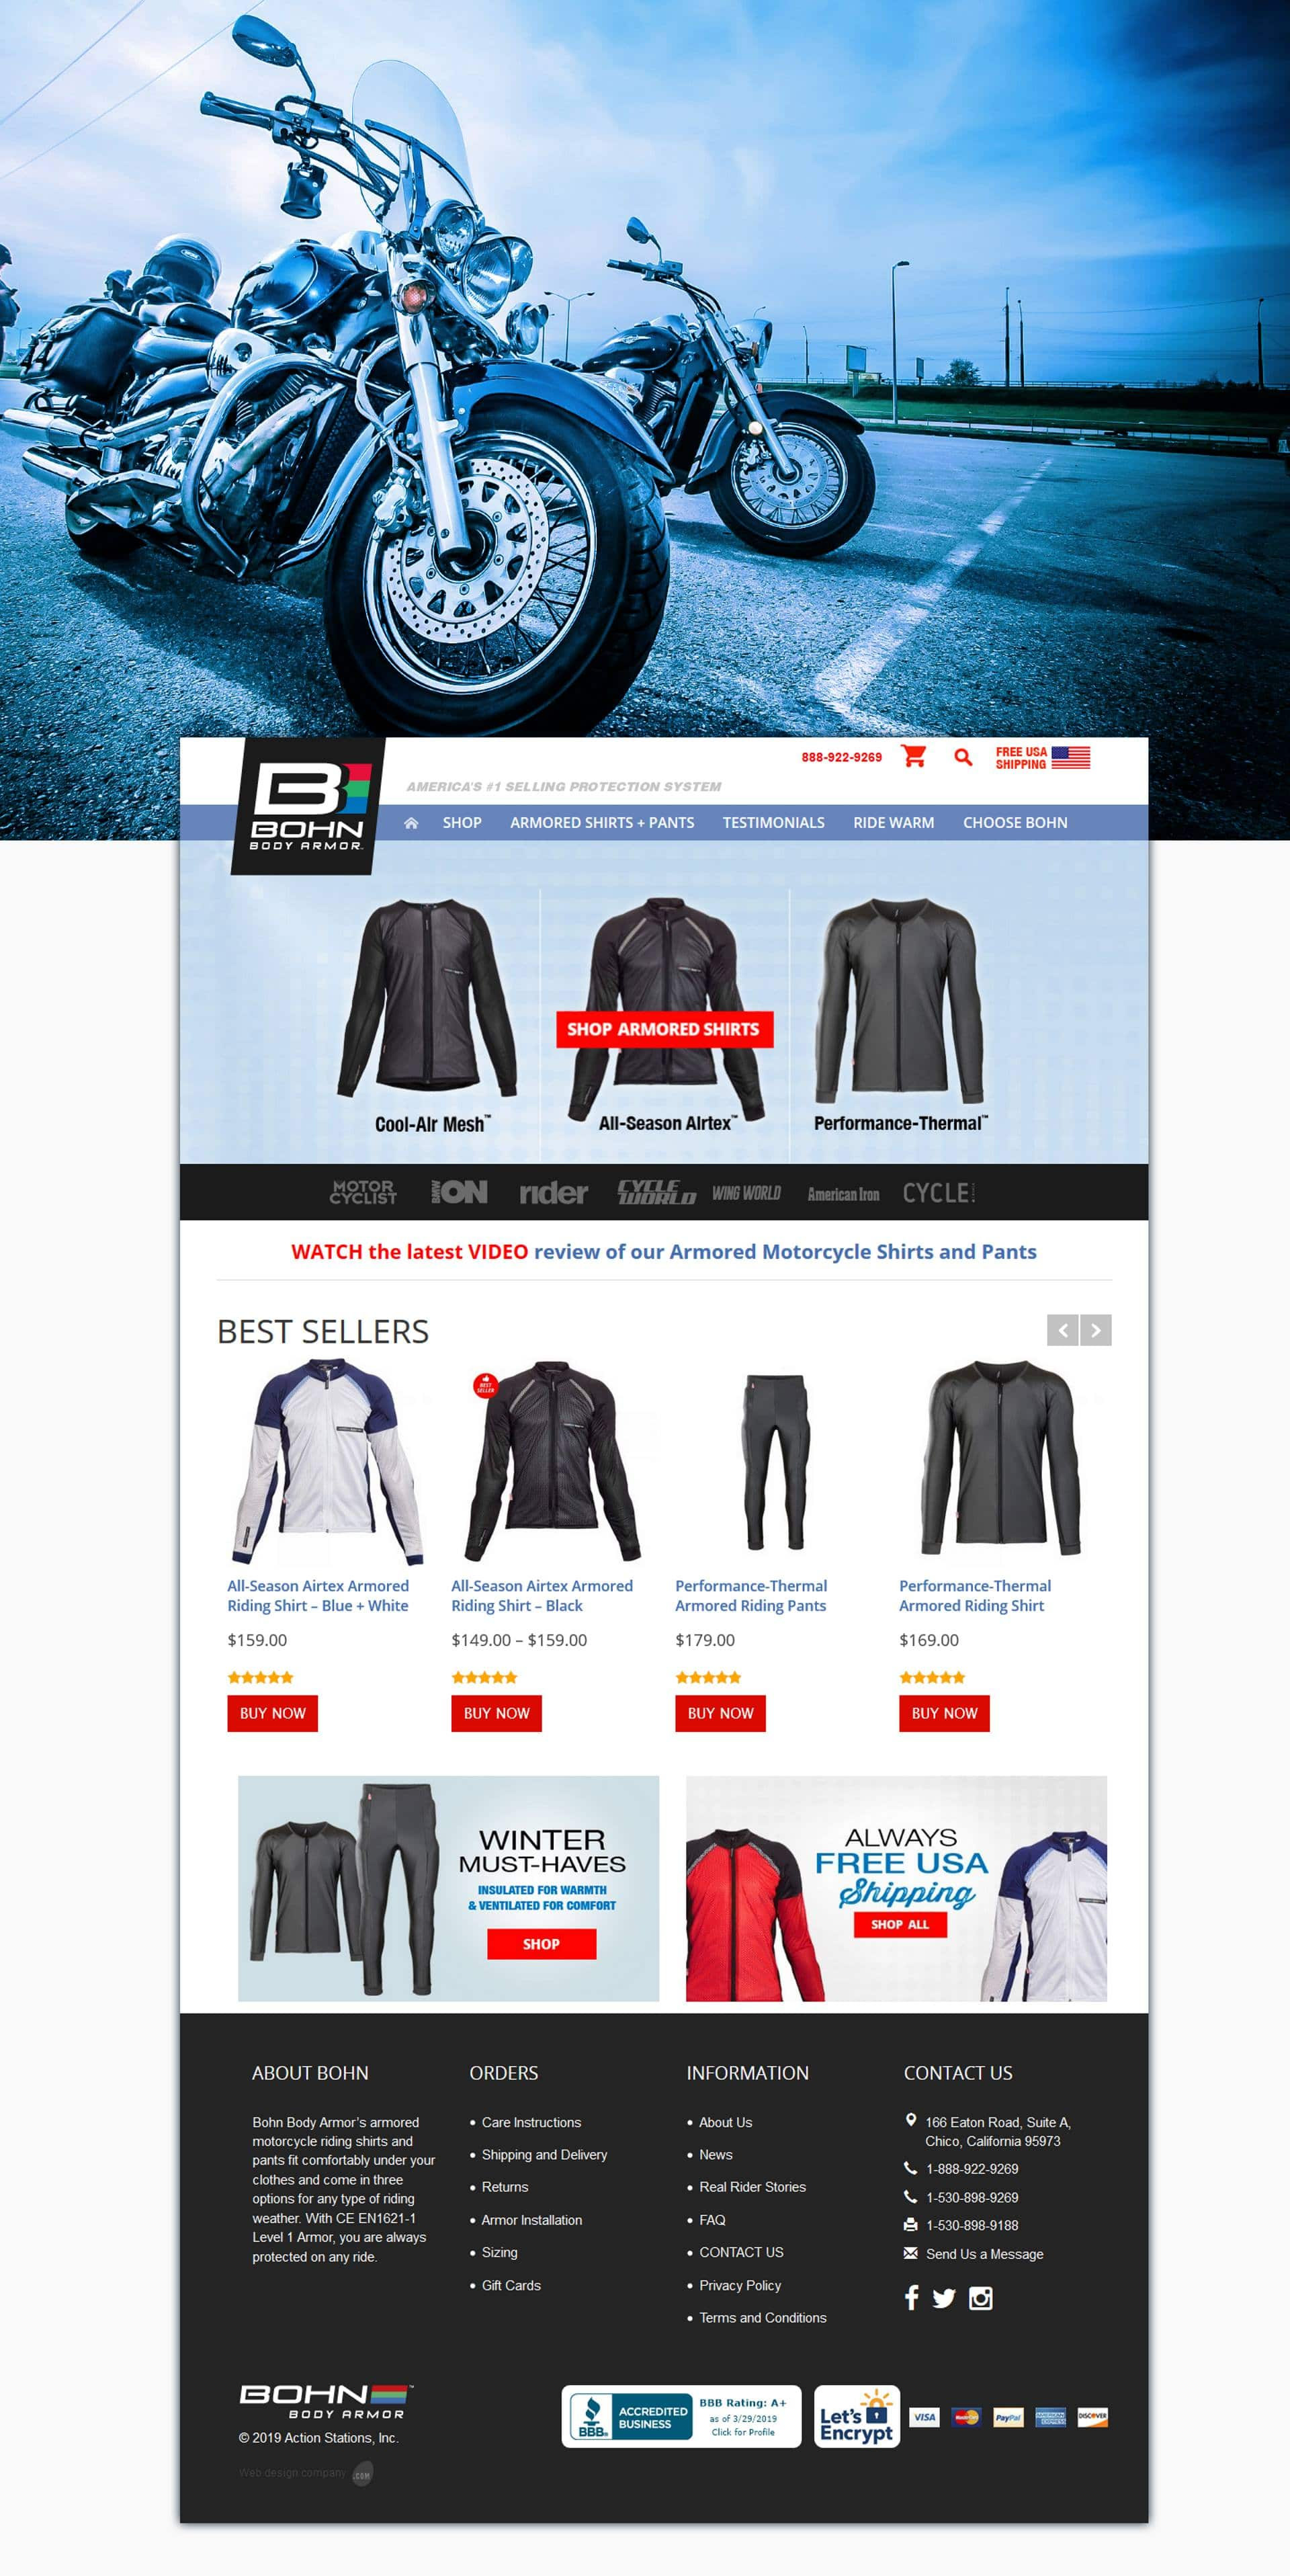 Bohn Armor Home Page Products